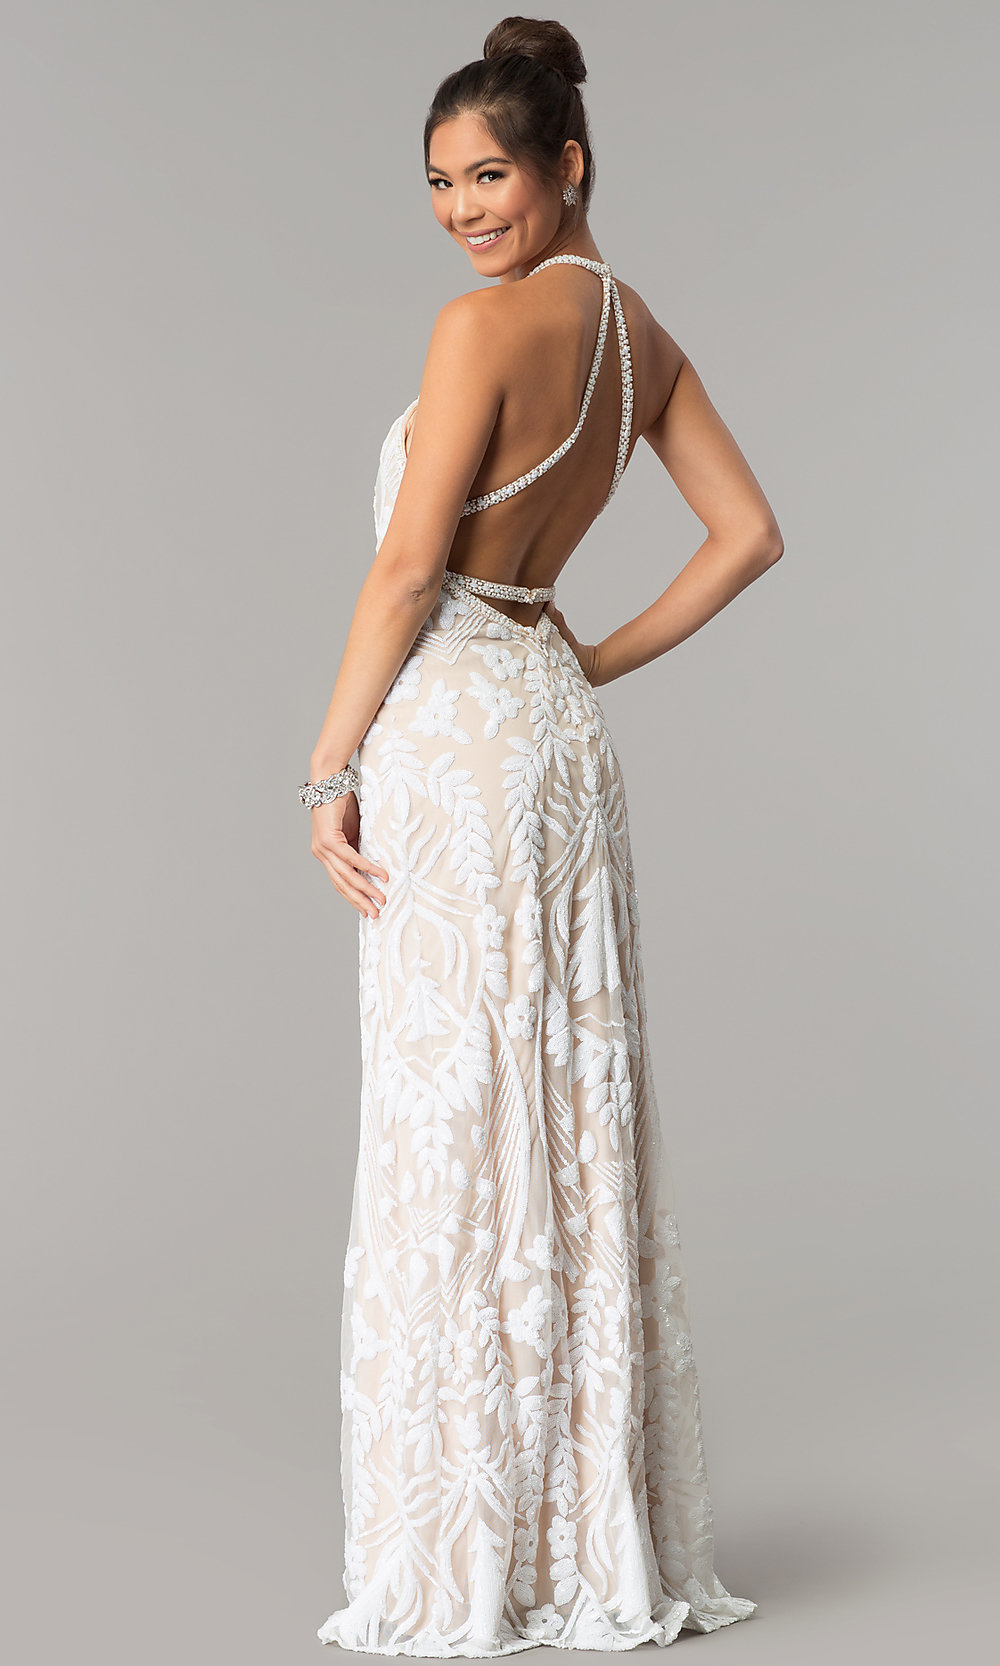 Zoey Grey Prom Dress with a Sheer Bodice